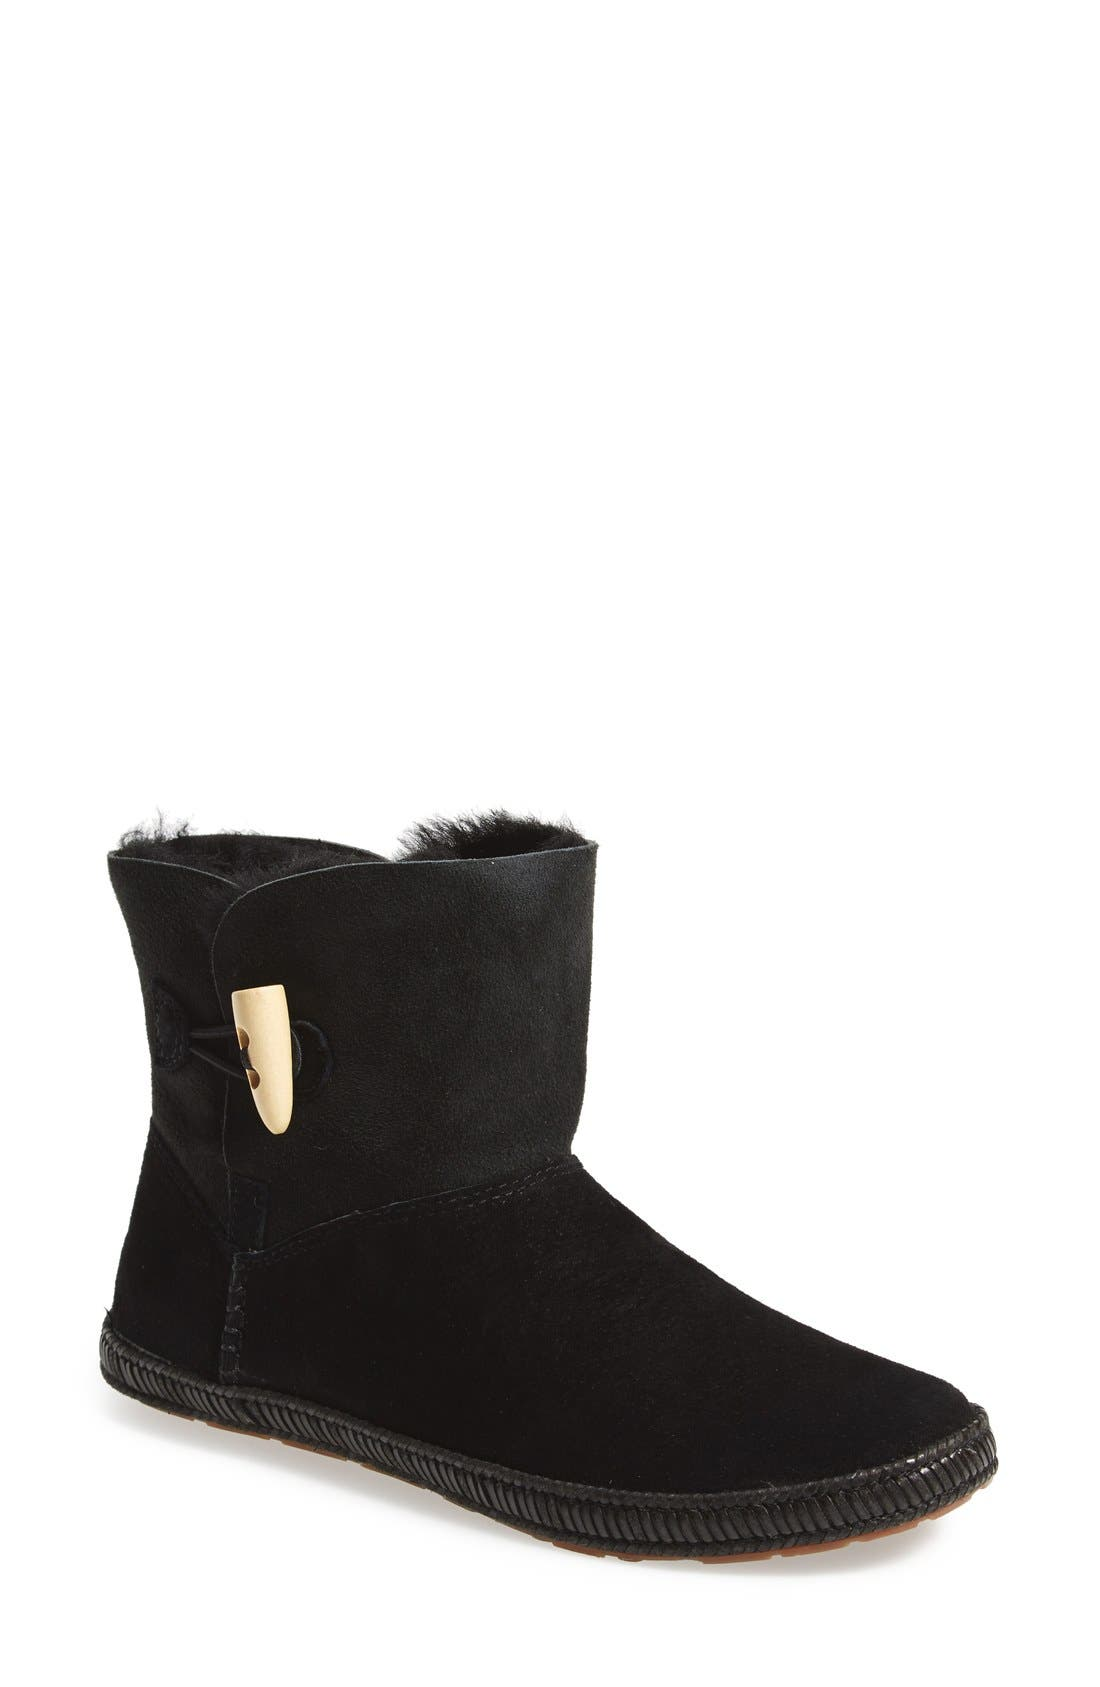 'Garnet' Toggle Boot,                         Main,                         color, Black